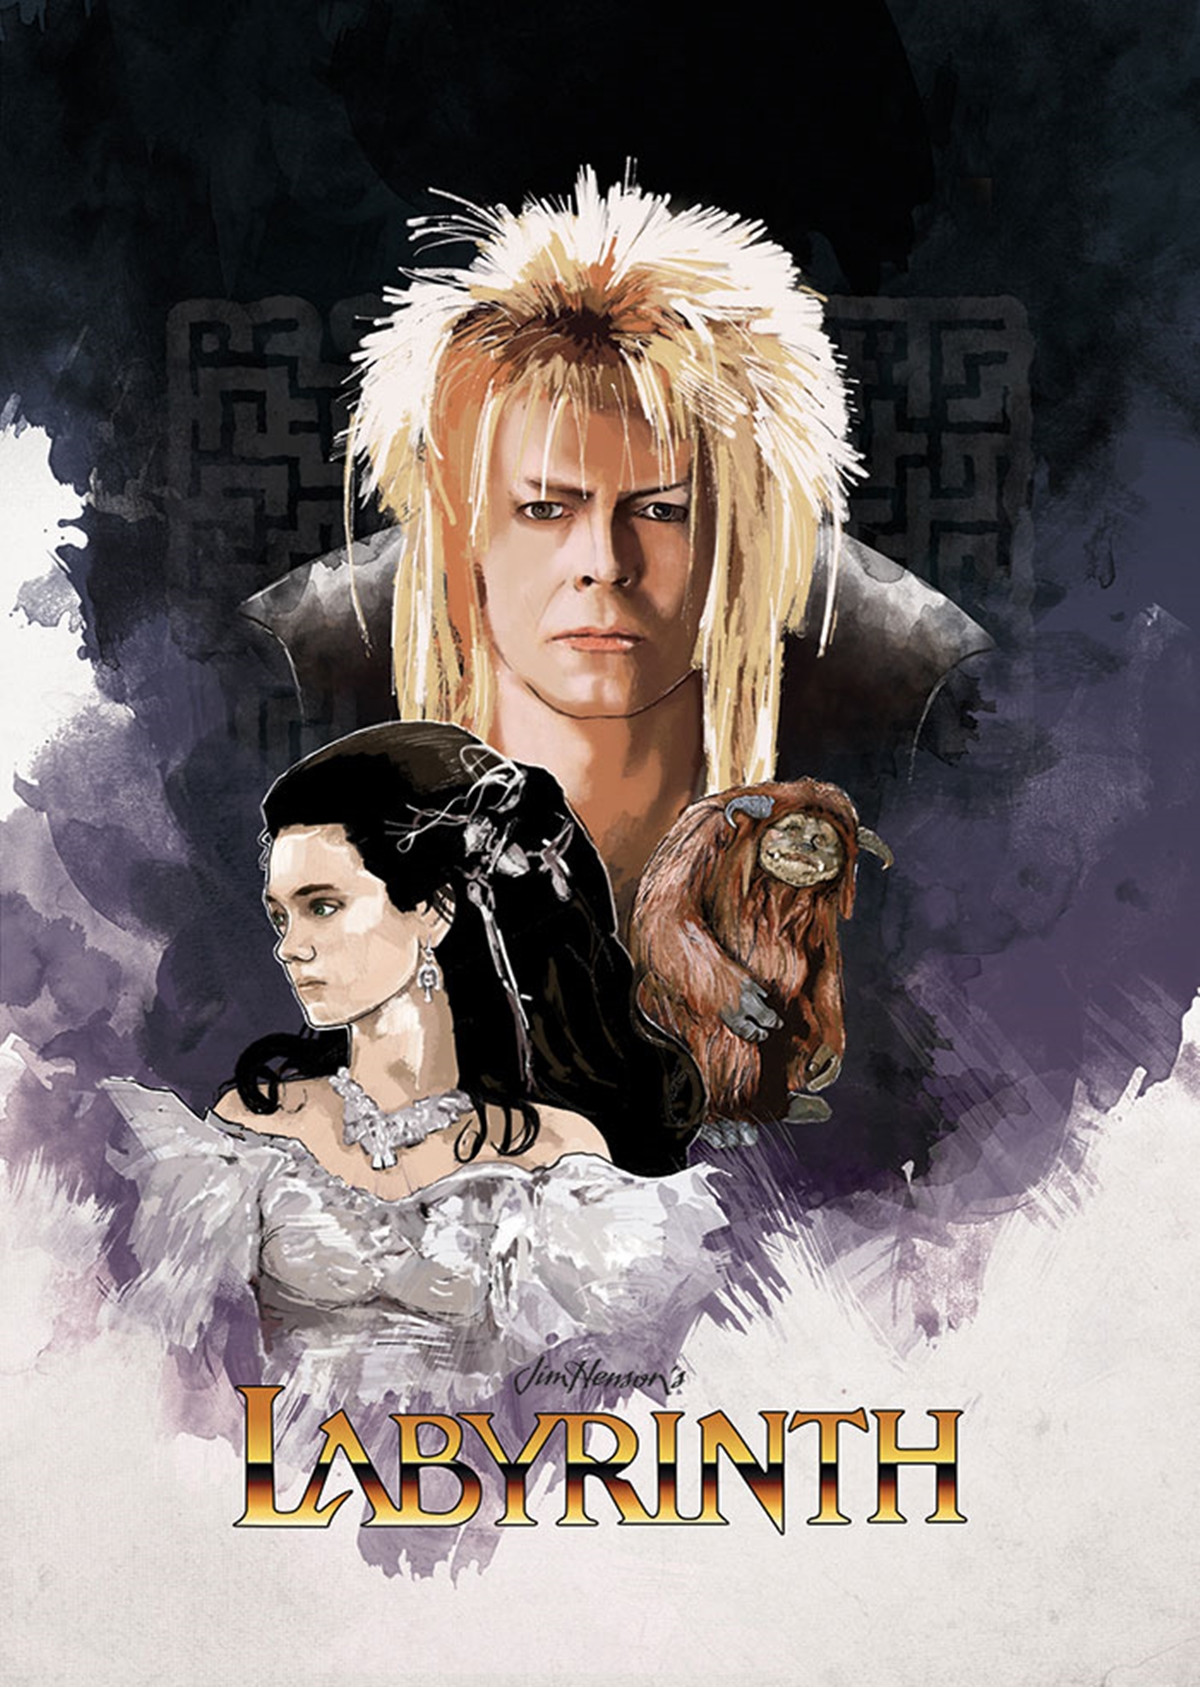 18 2 18 Things You Probably Didn't Know About Labyrinth